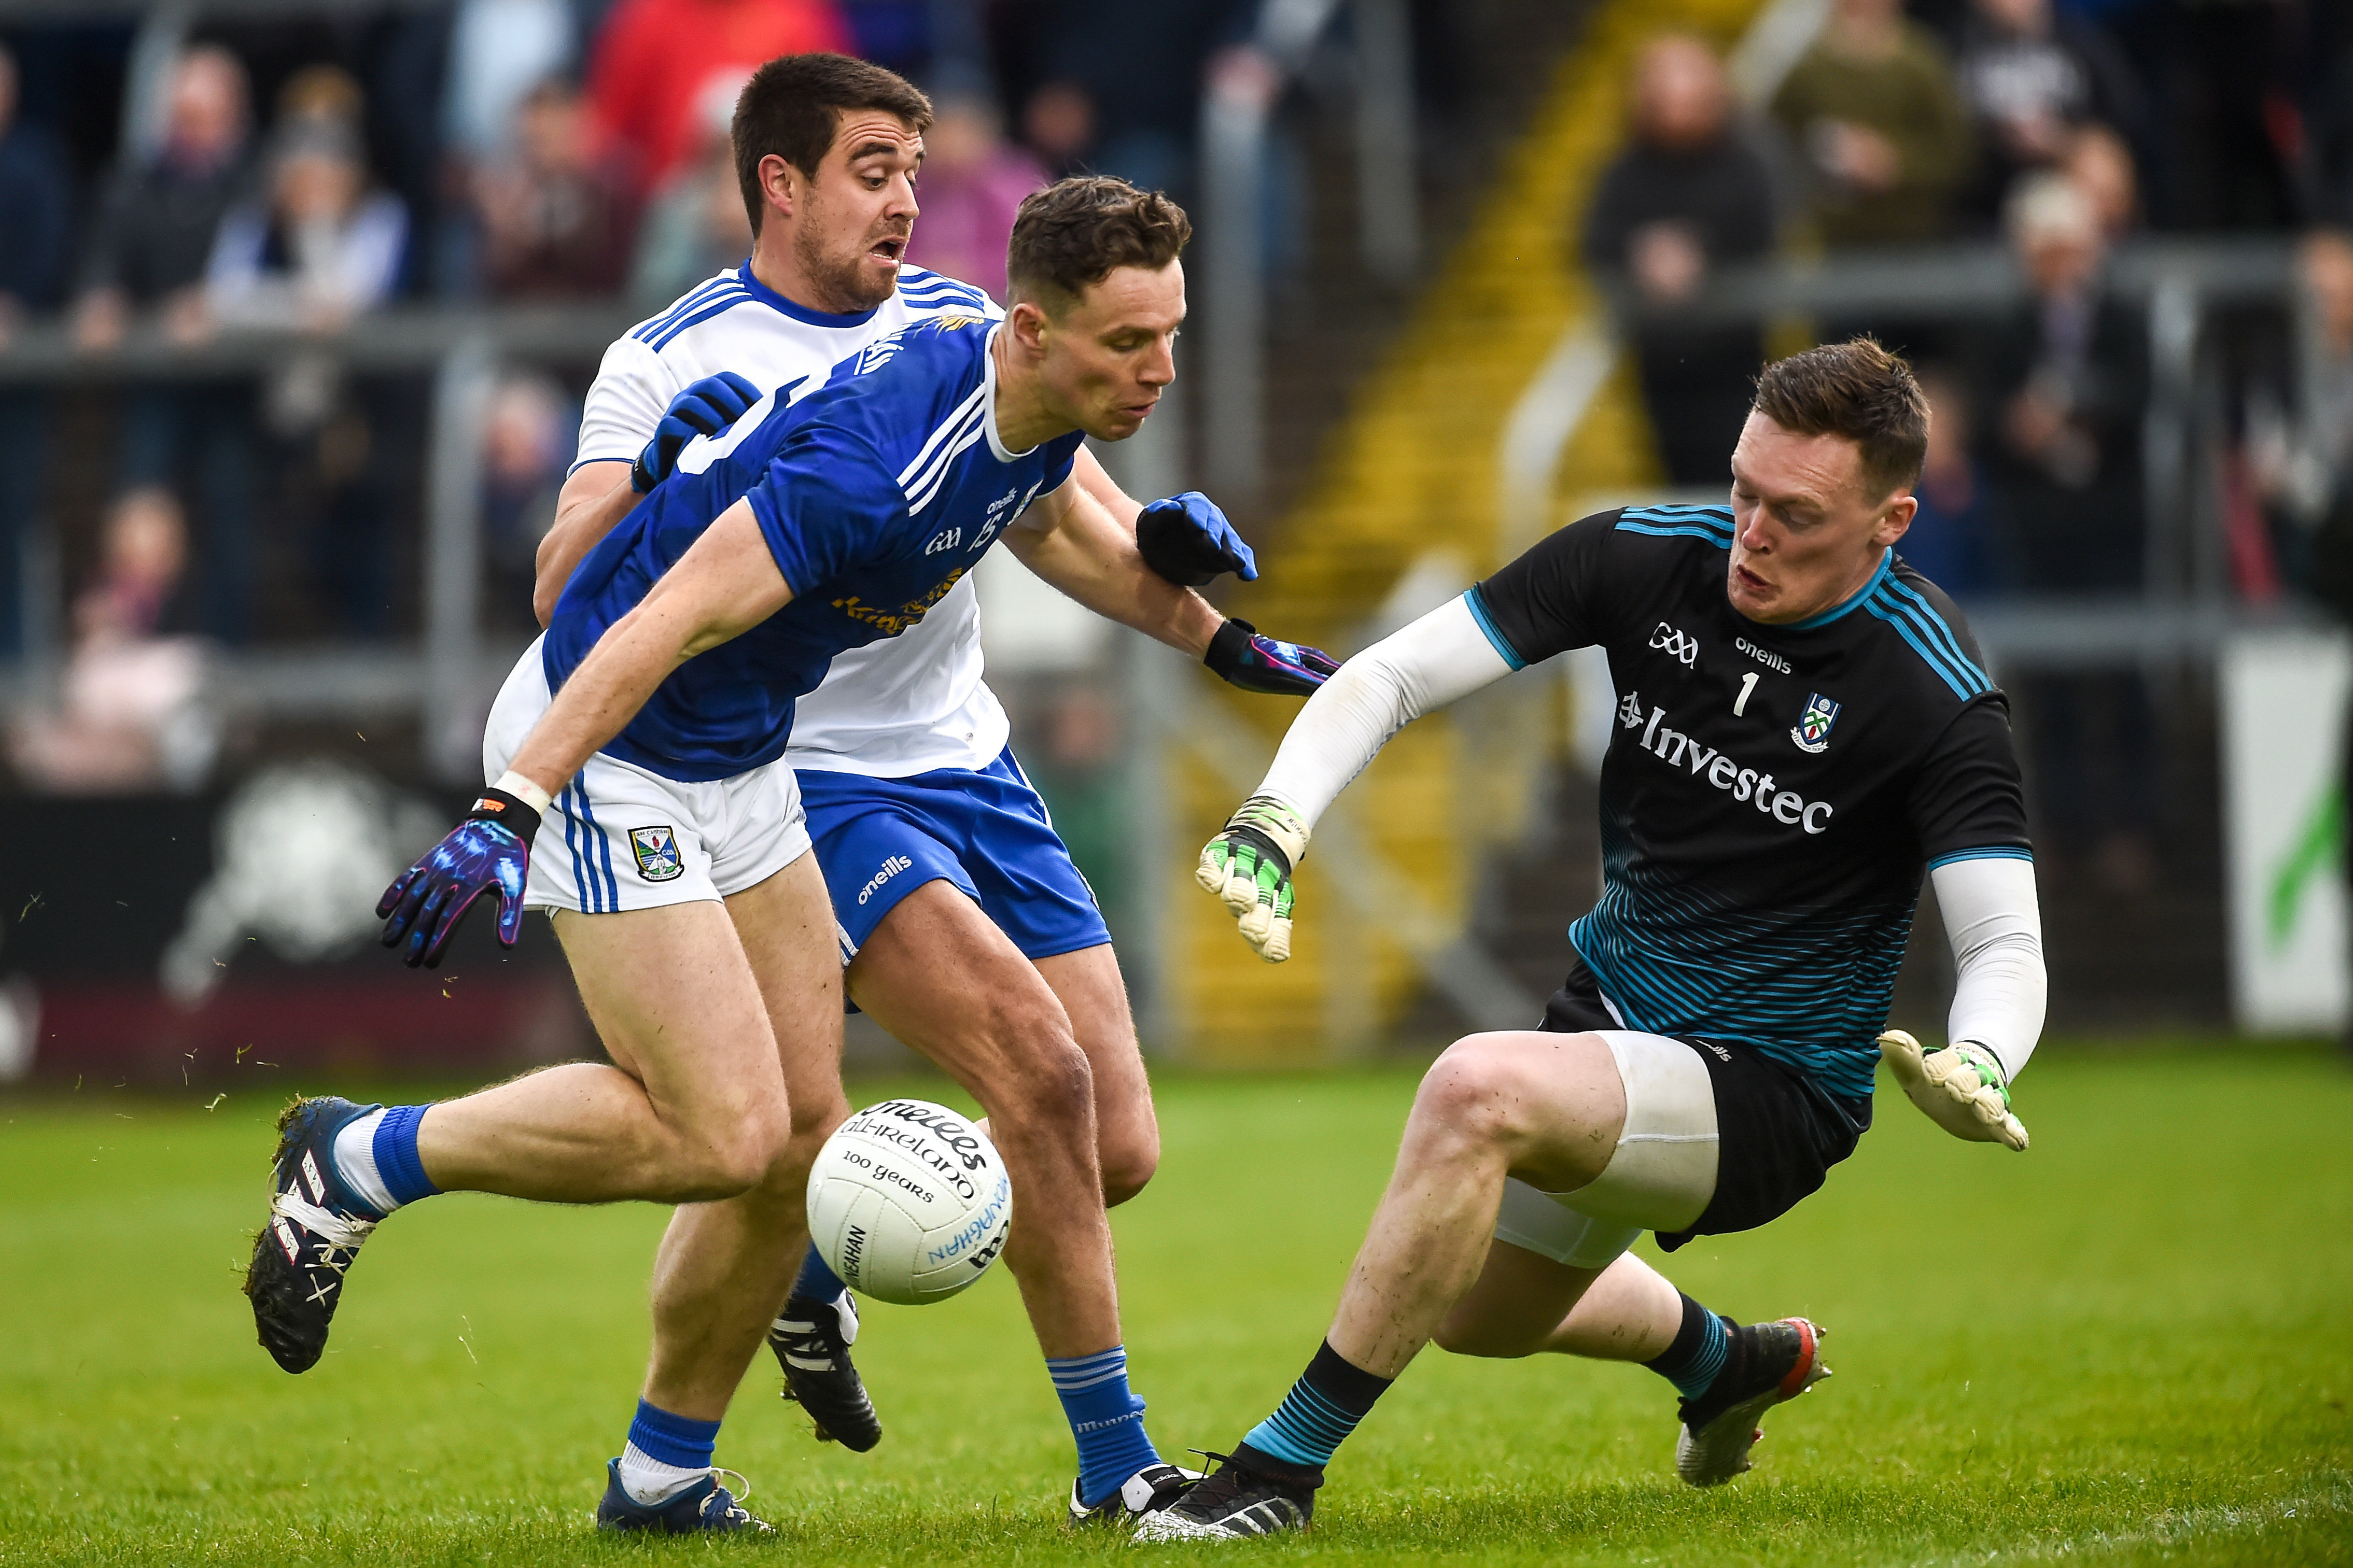 Cavan spring a surprise to advance to semi-final